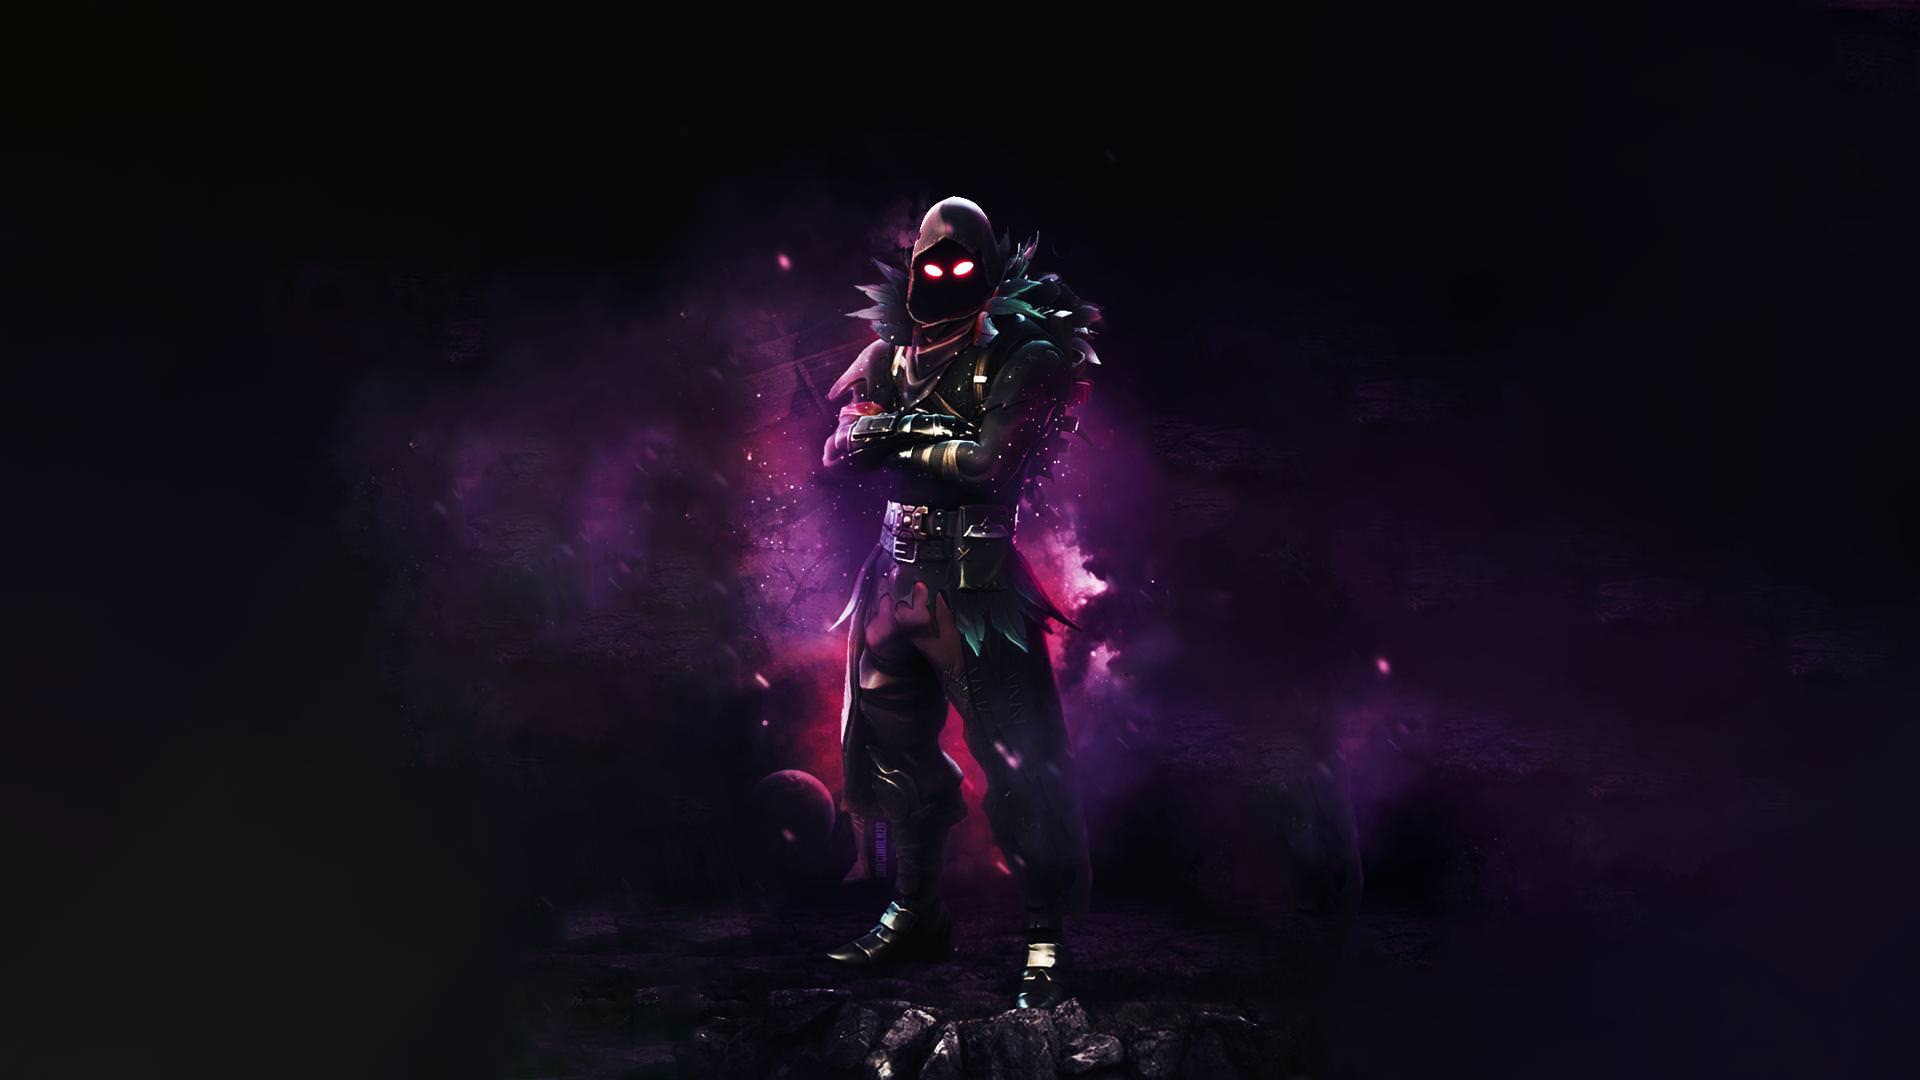 Fortnite Skin Wallpapers - Top Free Fortnite Skin Backgrounds ...